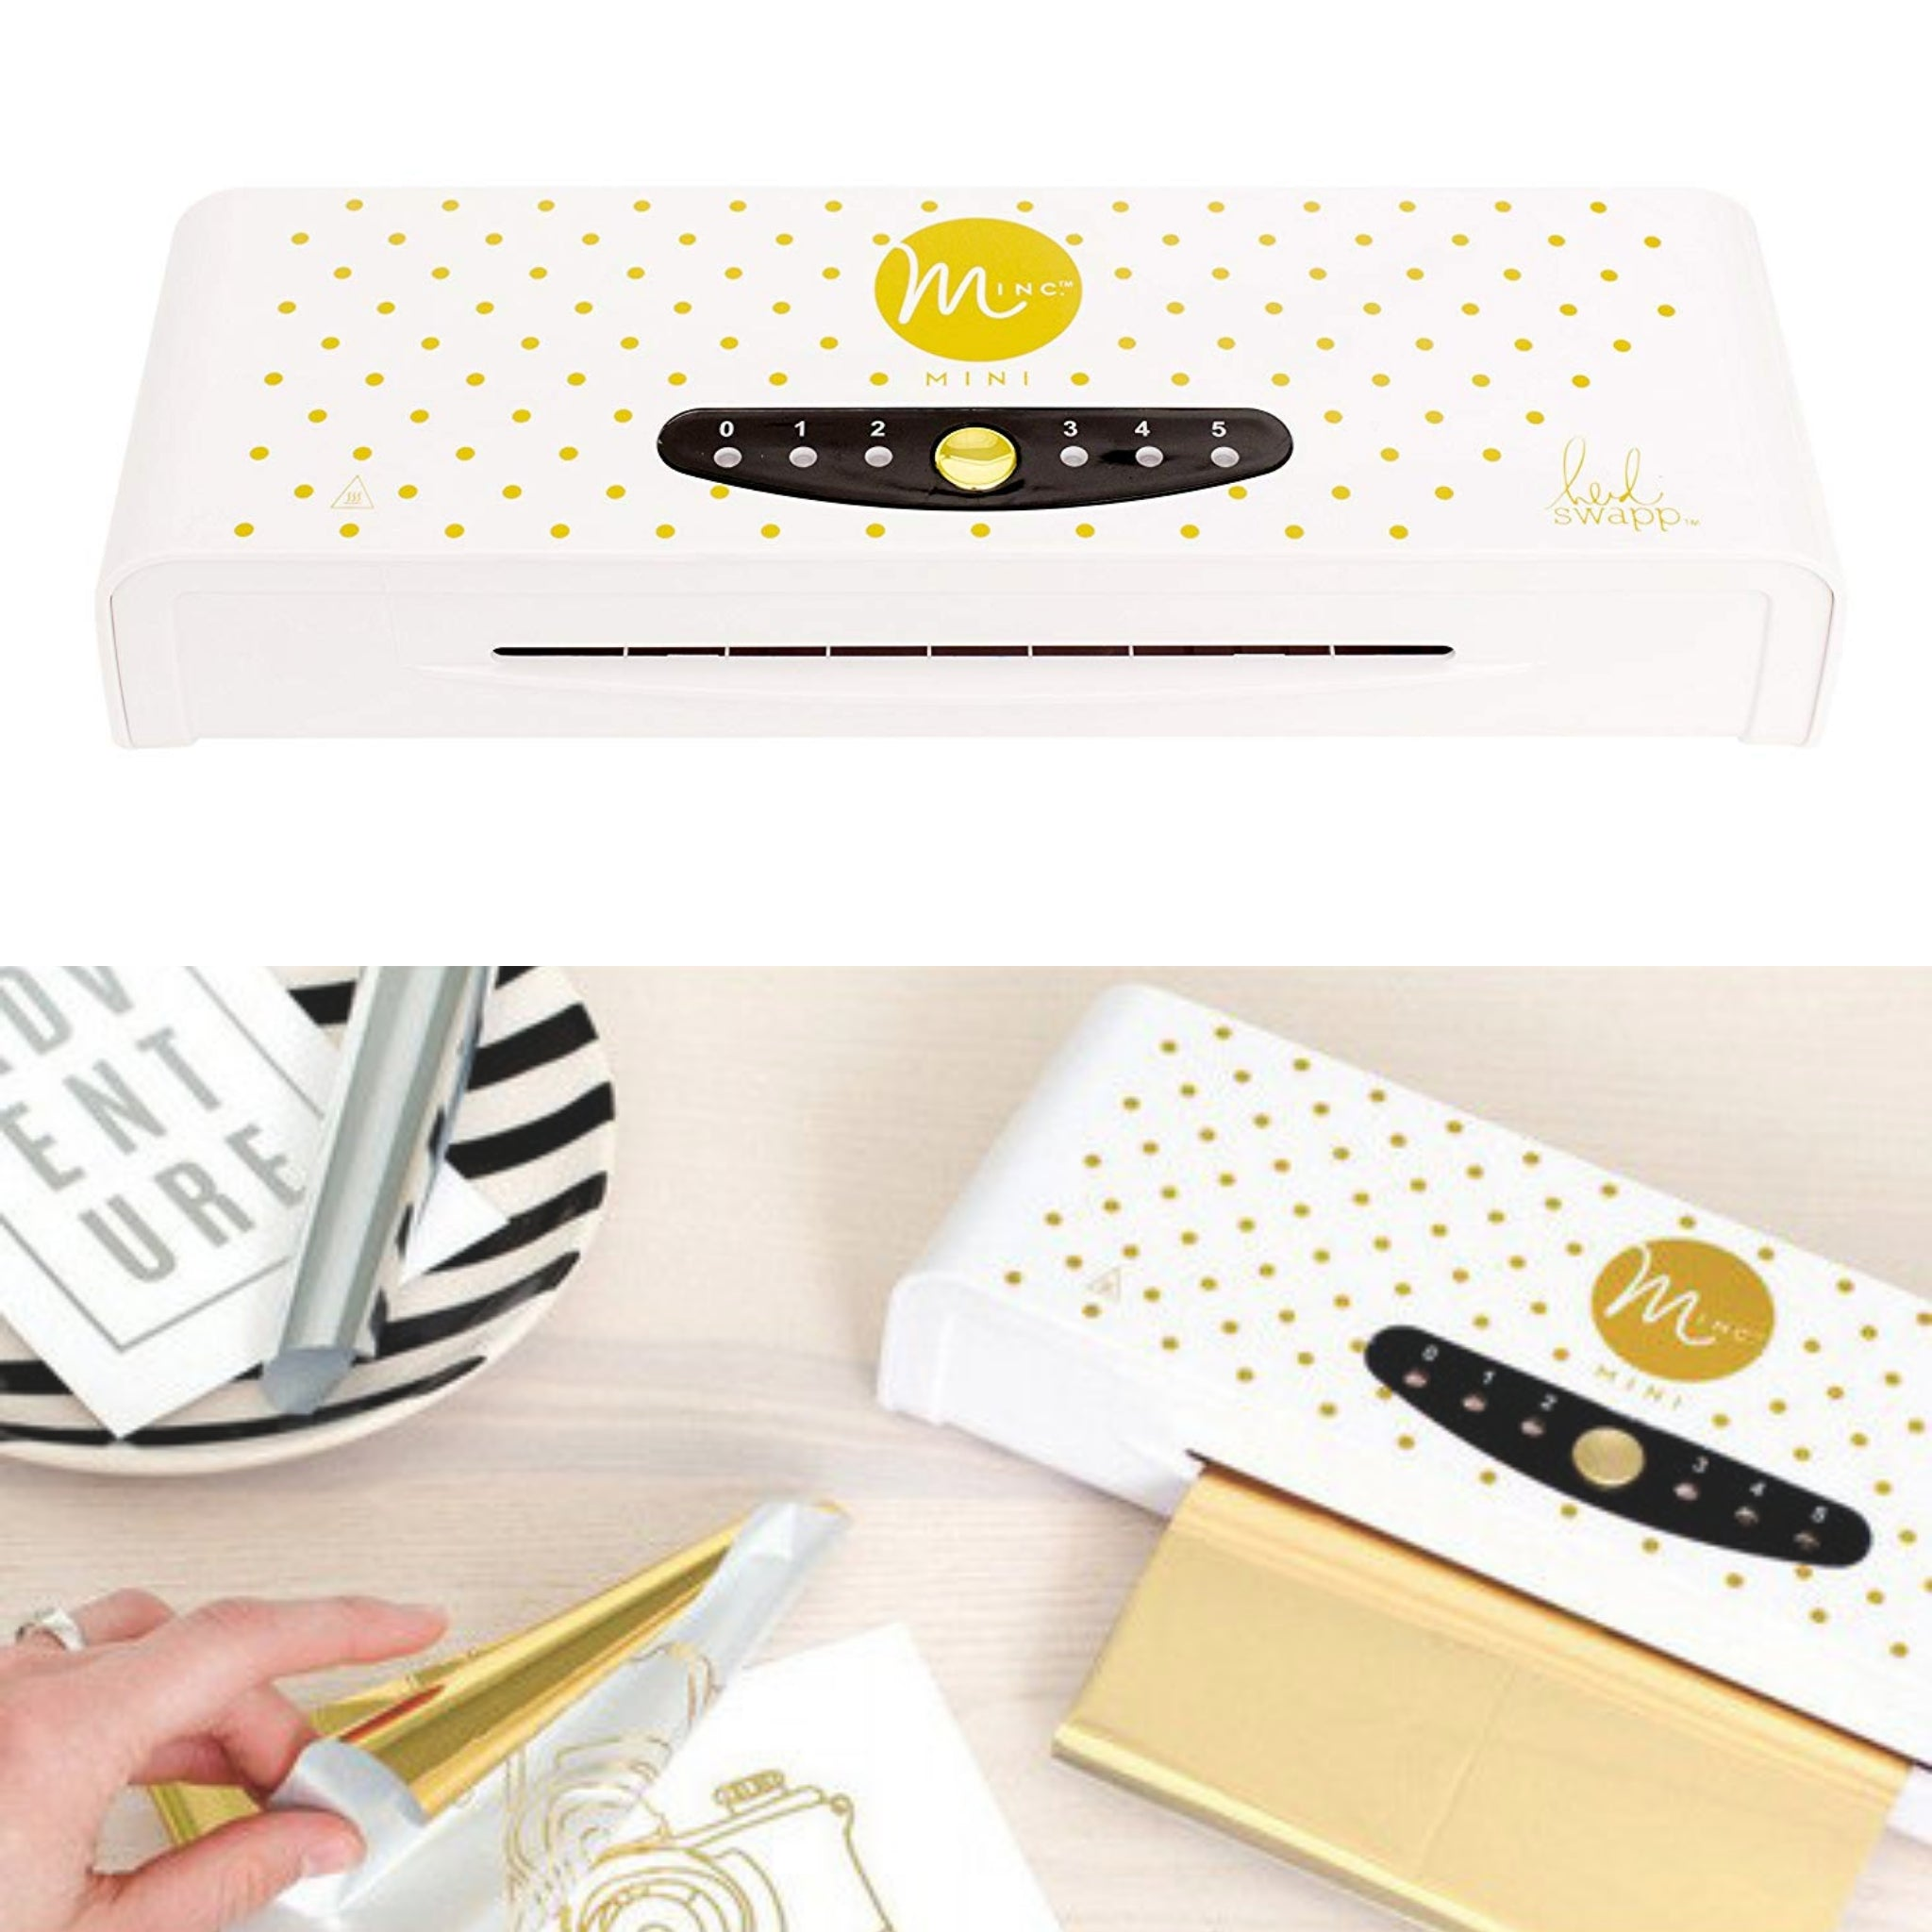 Mini Minc Foil Applicator and Starter Kit